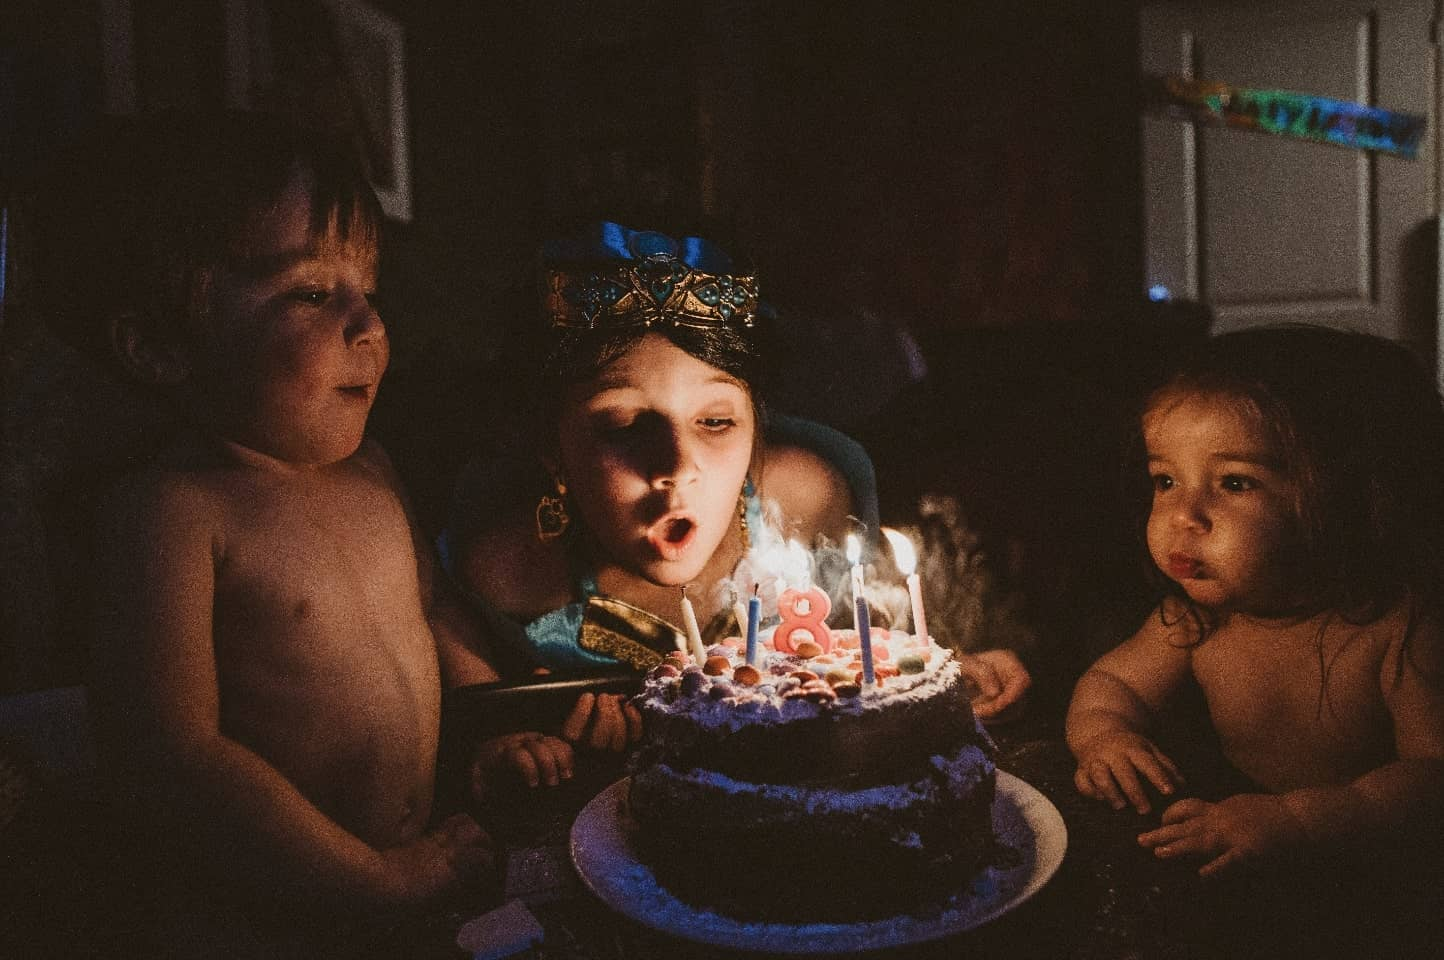 3 children blowing out birthday candles | Special occasion photographer Bath